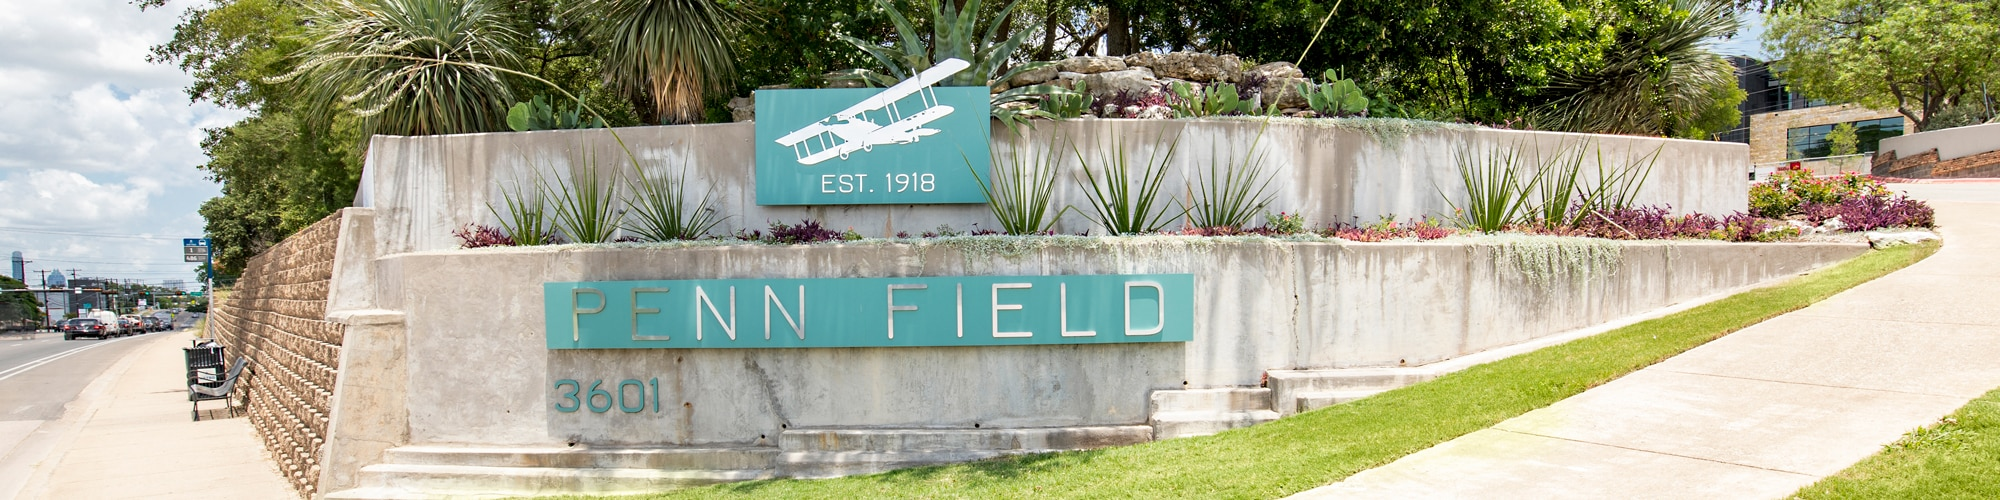 Penn-Field-Entrance-Signage